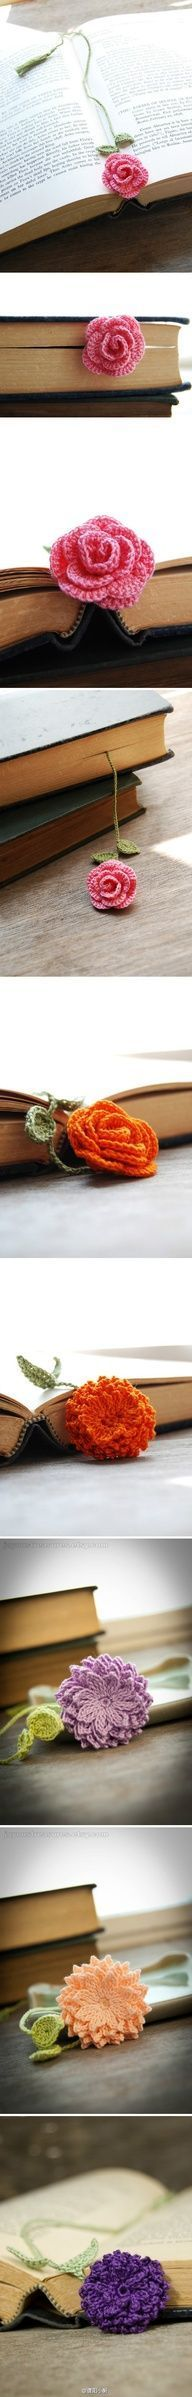 Pretty bookmarks - crochet flowers. Choose your favorite crochet flower pattern and color. Voila!  3 likes 12 repins  Dilce Costa via Veronica Johnson-Cavins onto Crafting